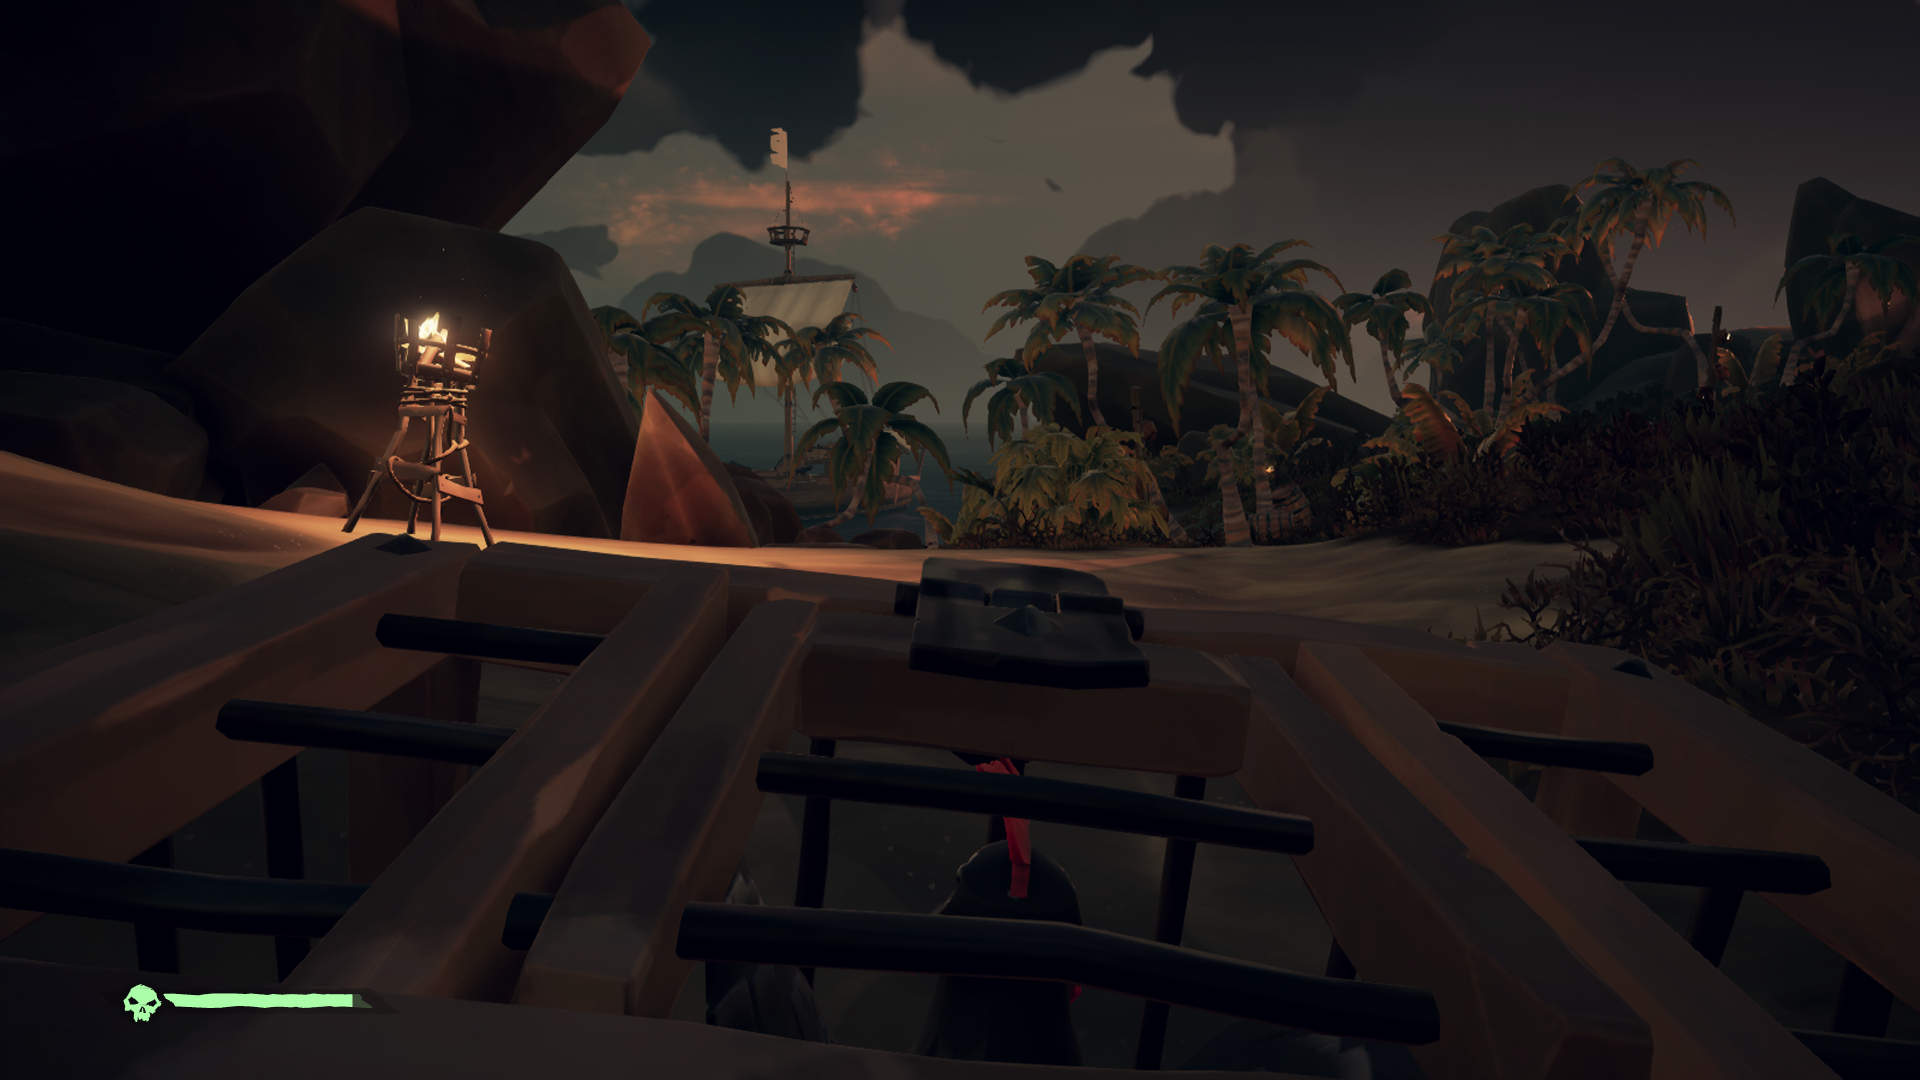 Sea of Thieves' Chickens and Pigs Guide: Where to Find and Catch